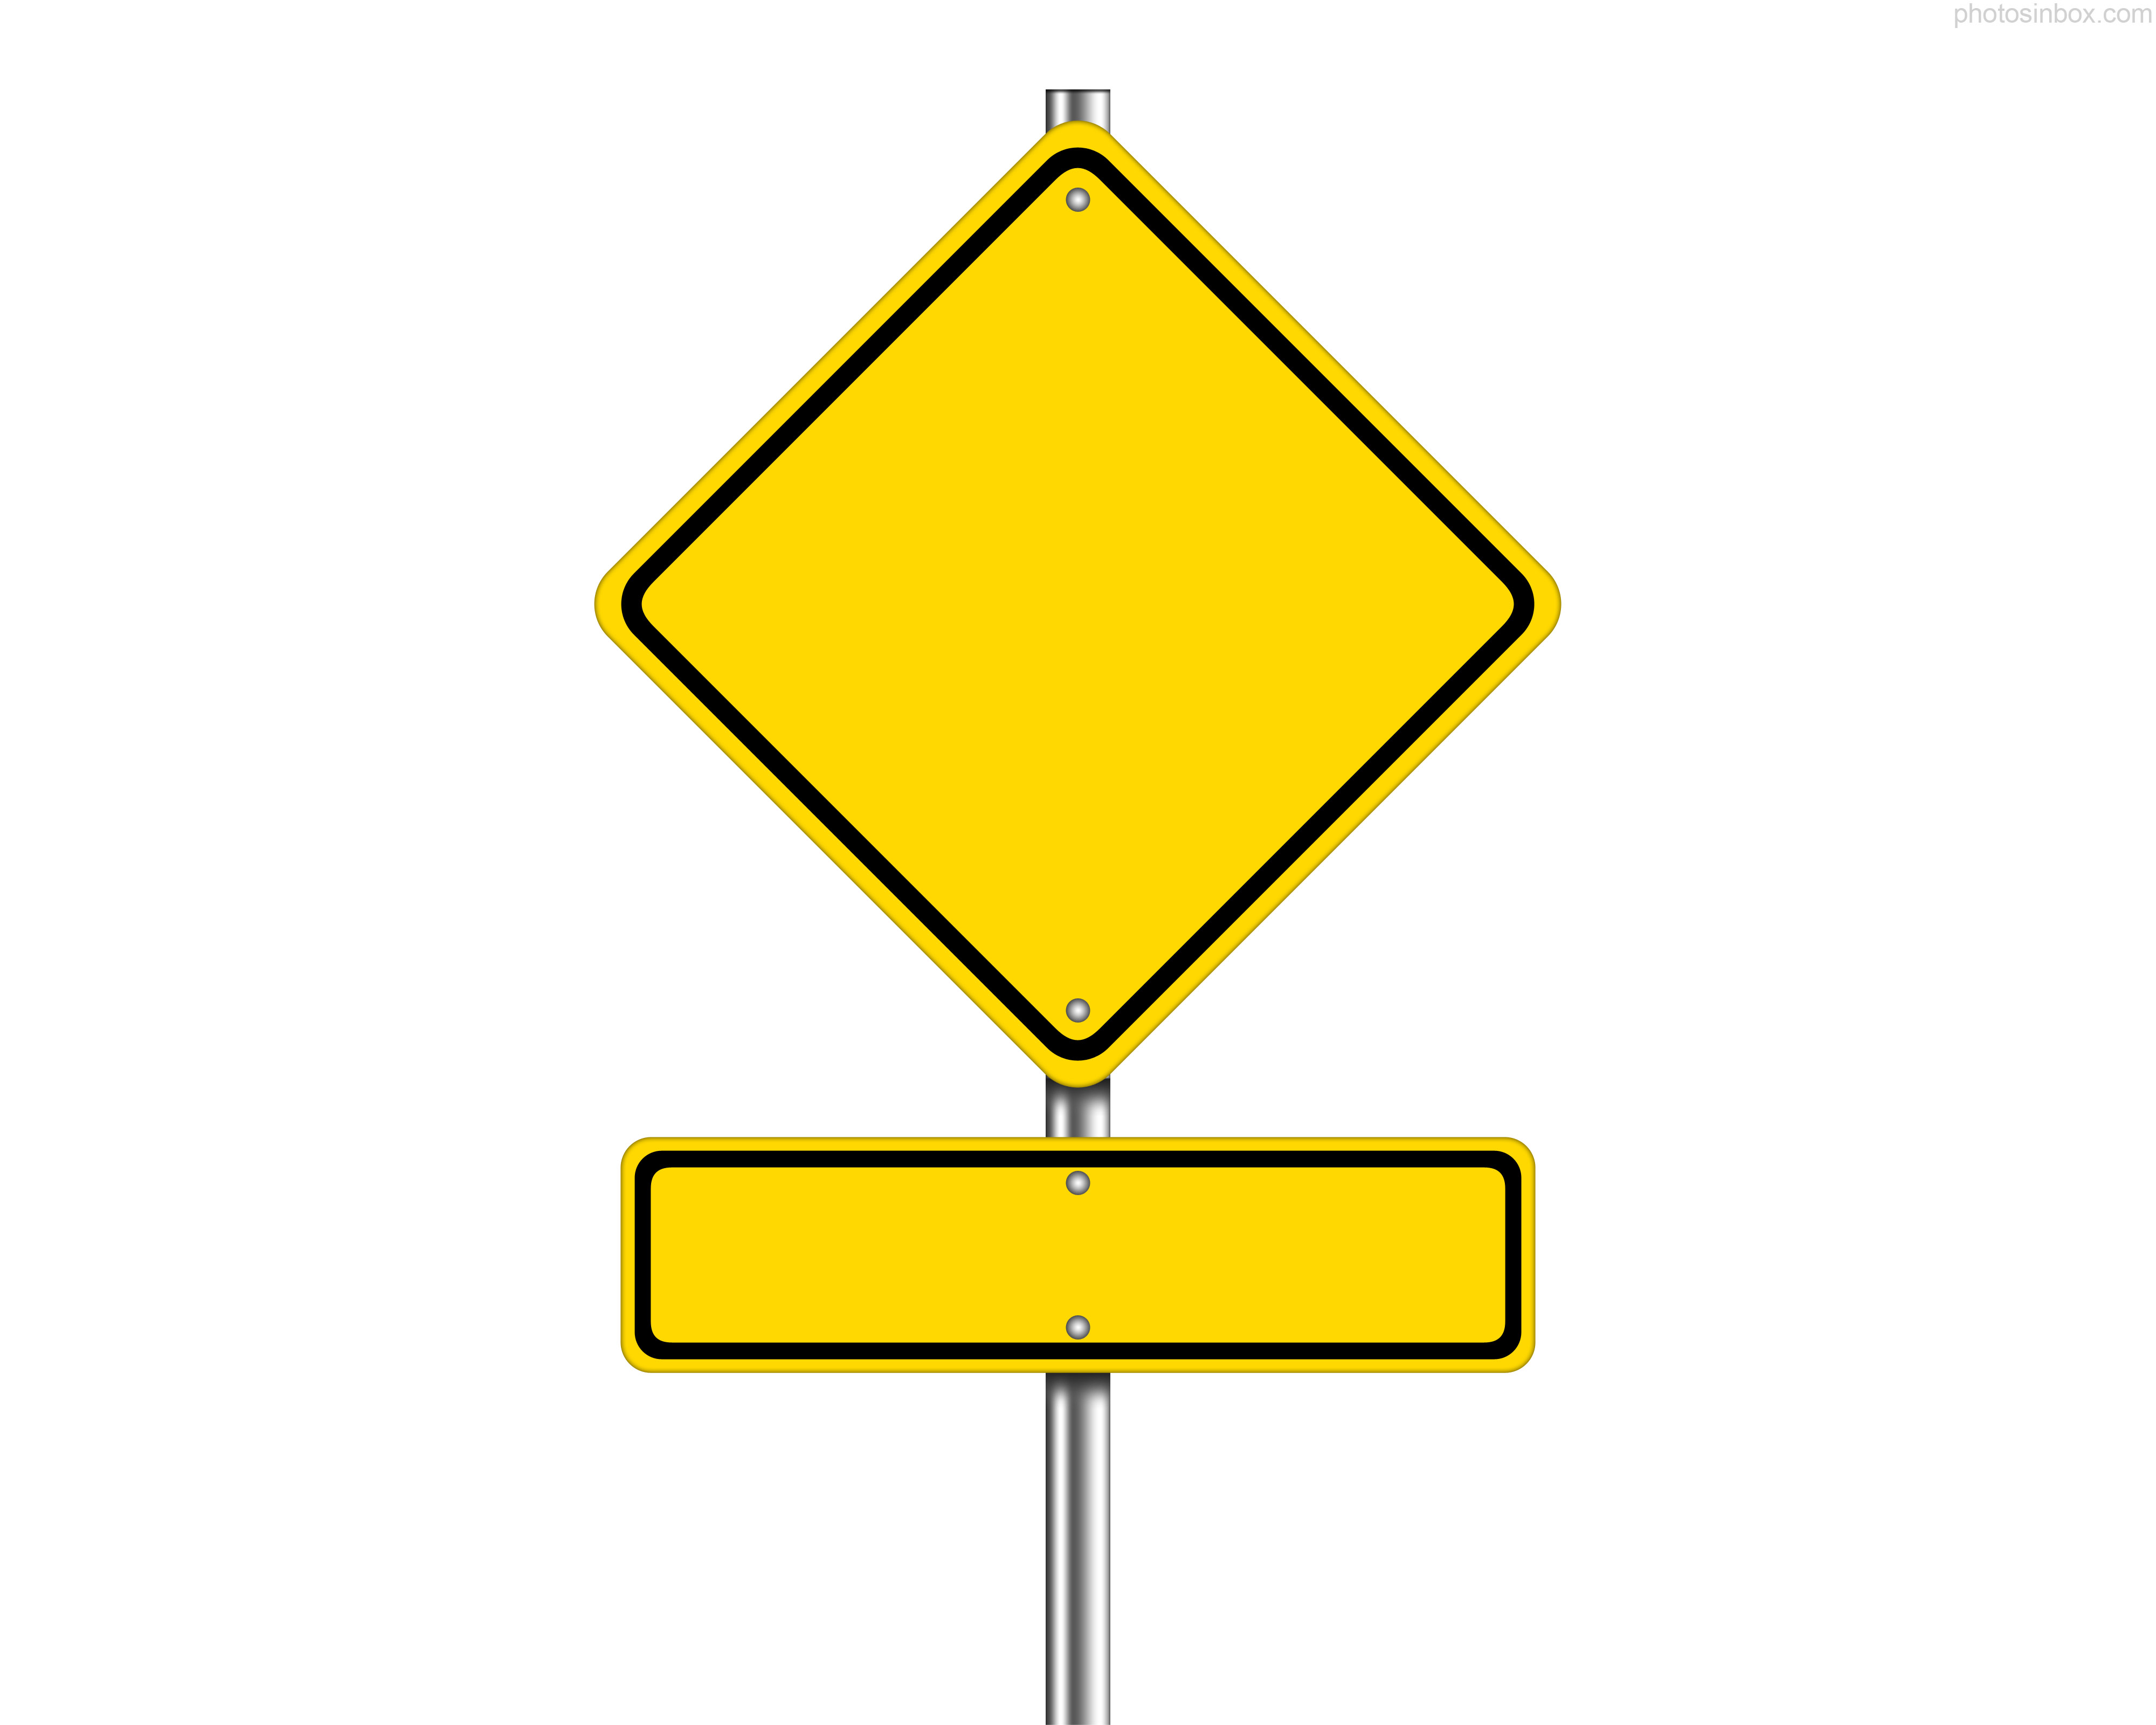 Free sign templates clipart image download Free Images Of Road Signs, Download Free Clip Art, Free Clip Art on ... image download